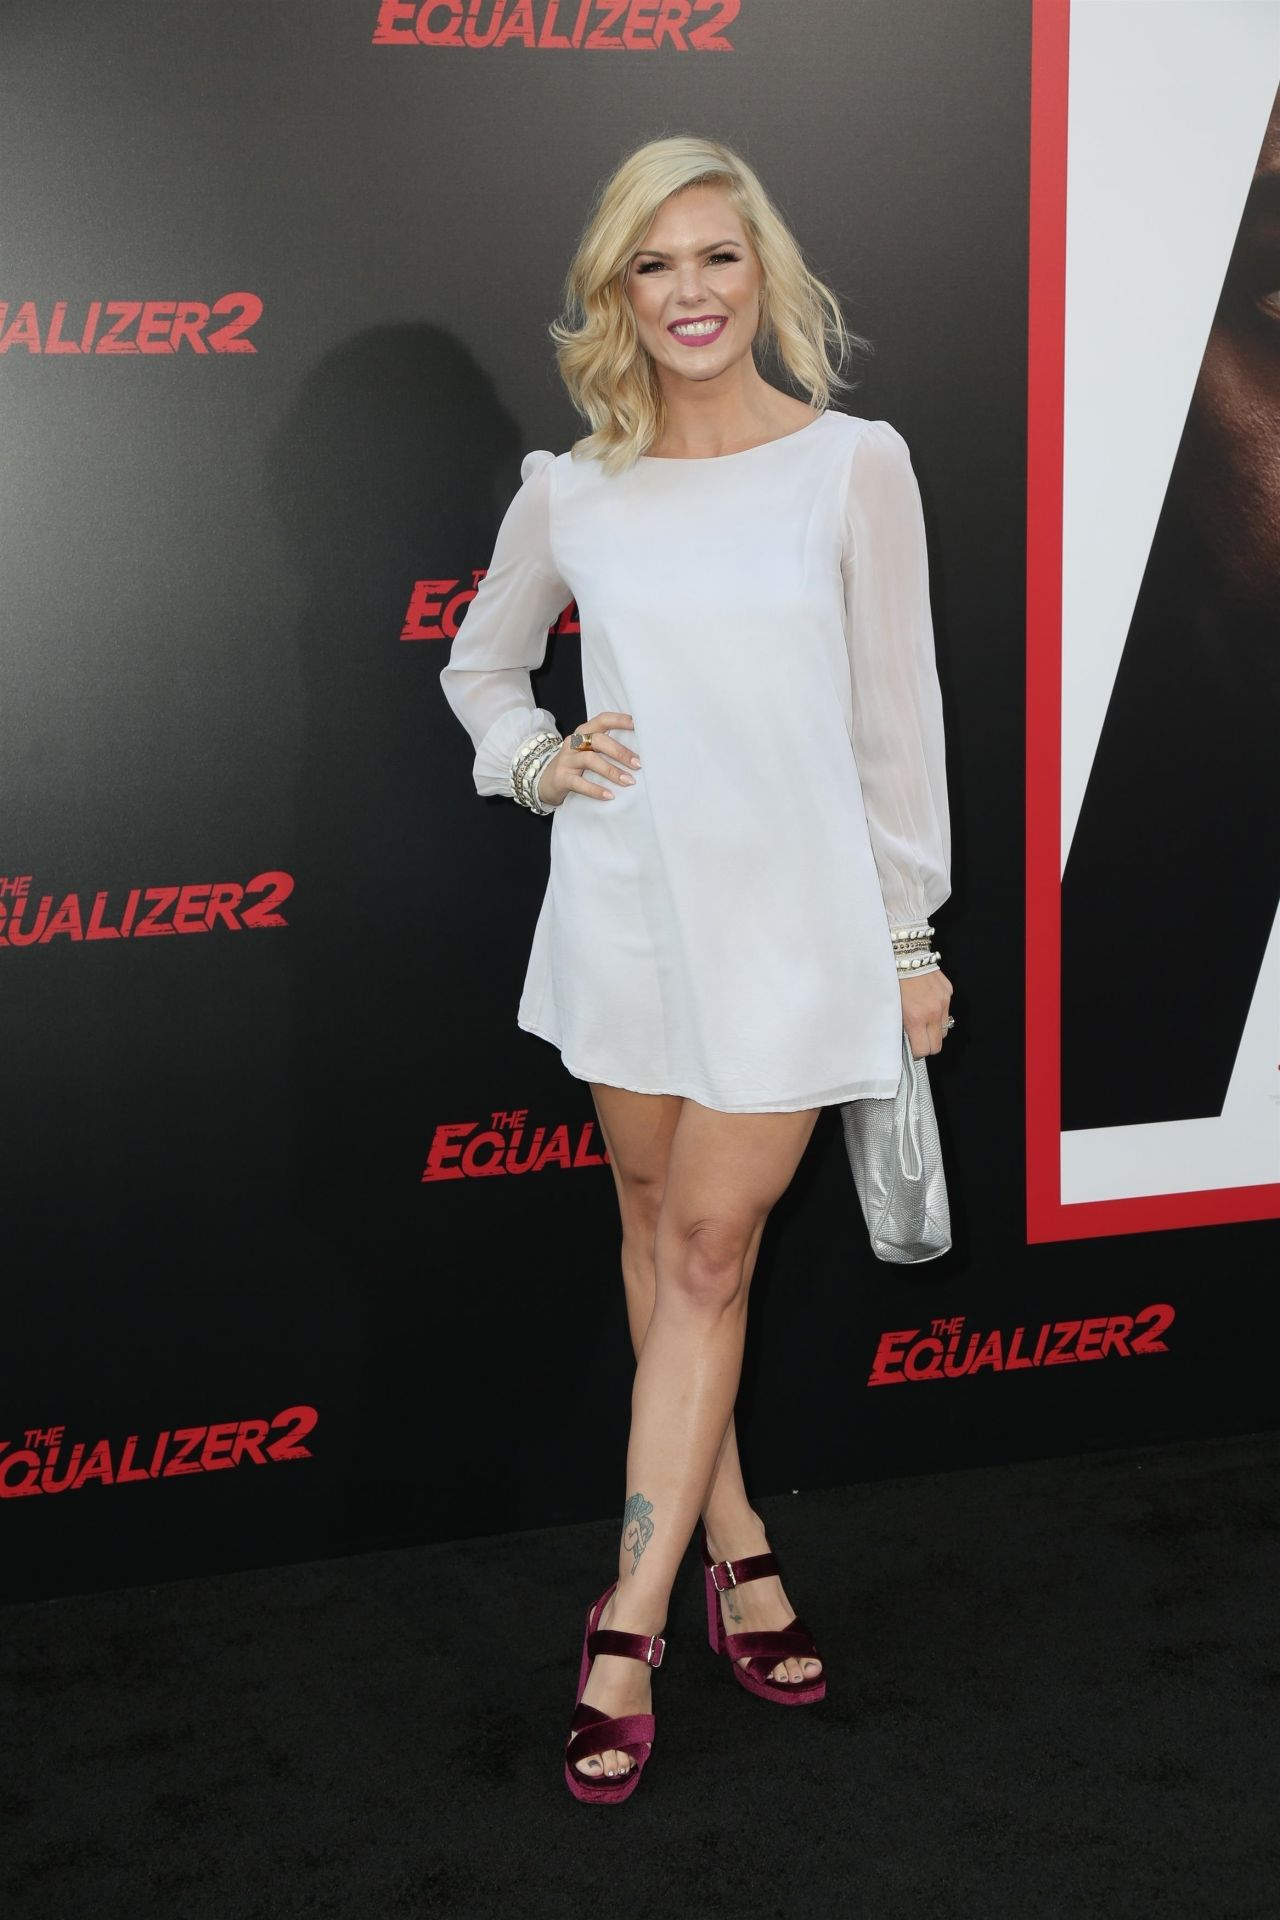 Kimberly Caldwell Quot The Equalizer 2 Quot Premiere In Los Angeles